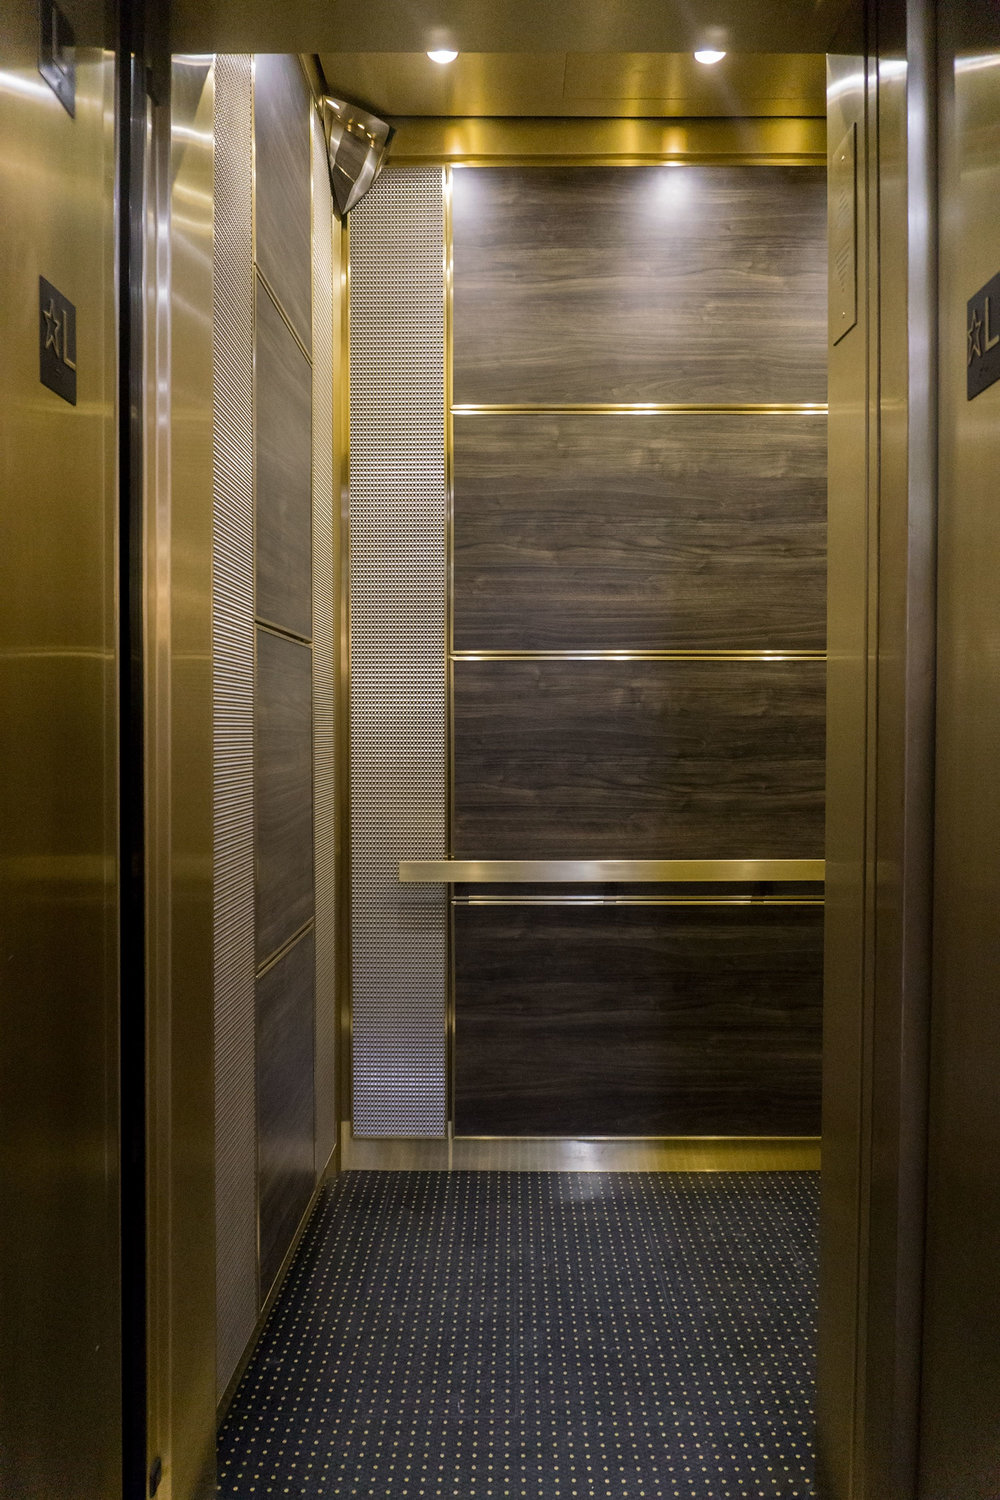 350 east 62nd street | united cabs, inc.